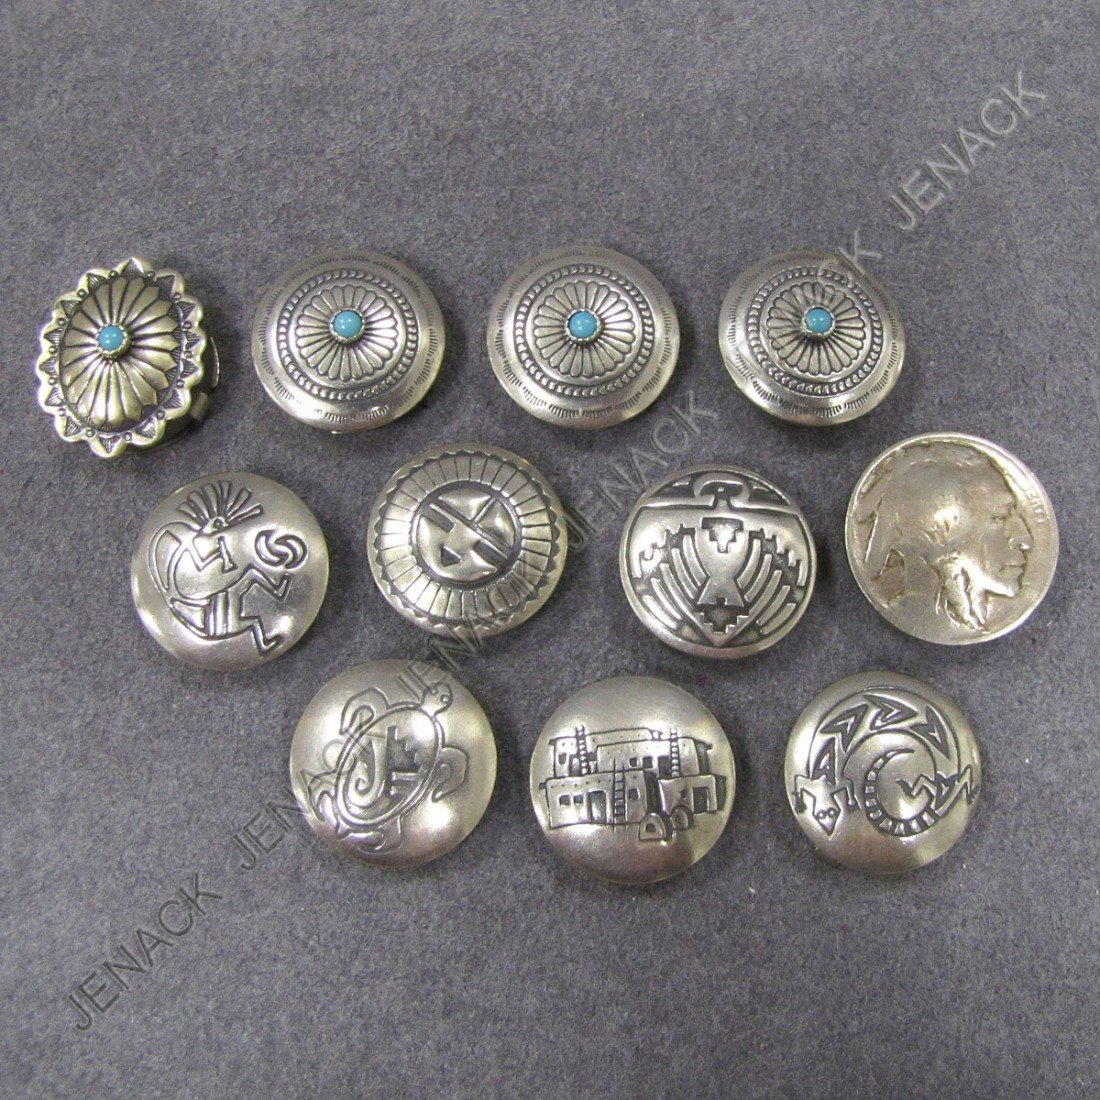 17: LOT (10) BUTTON COVERS